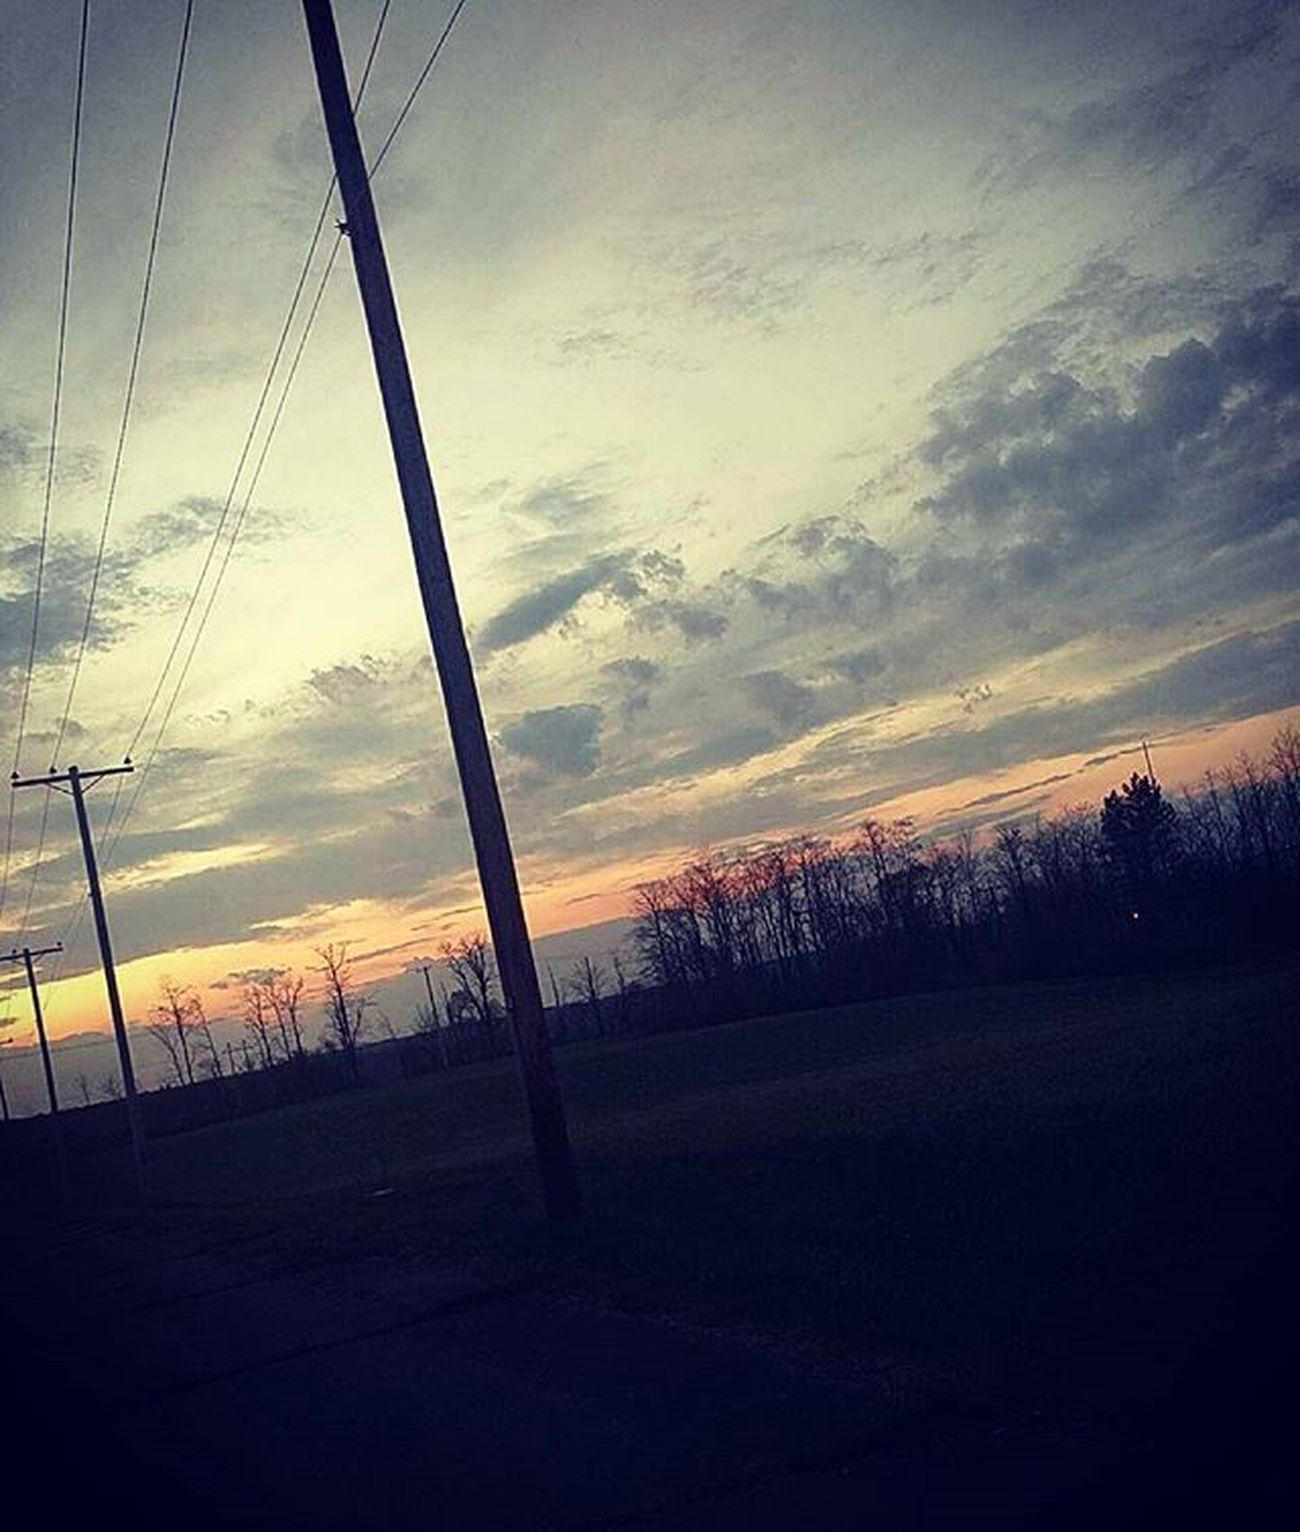 Neverending skies . . . . . . Nature Sunset DOPE Outdoors GetOutThere Scenicpa Centralpascenery WesternPA Cool Teampawild